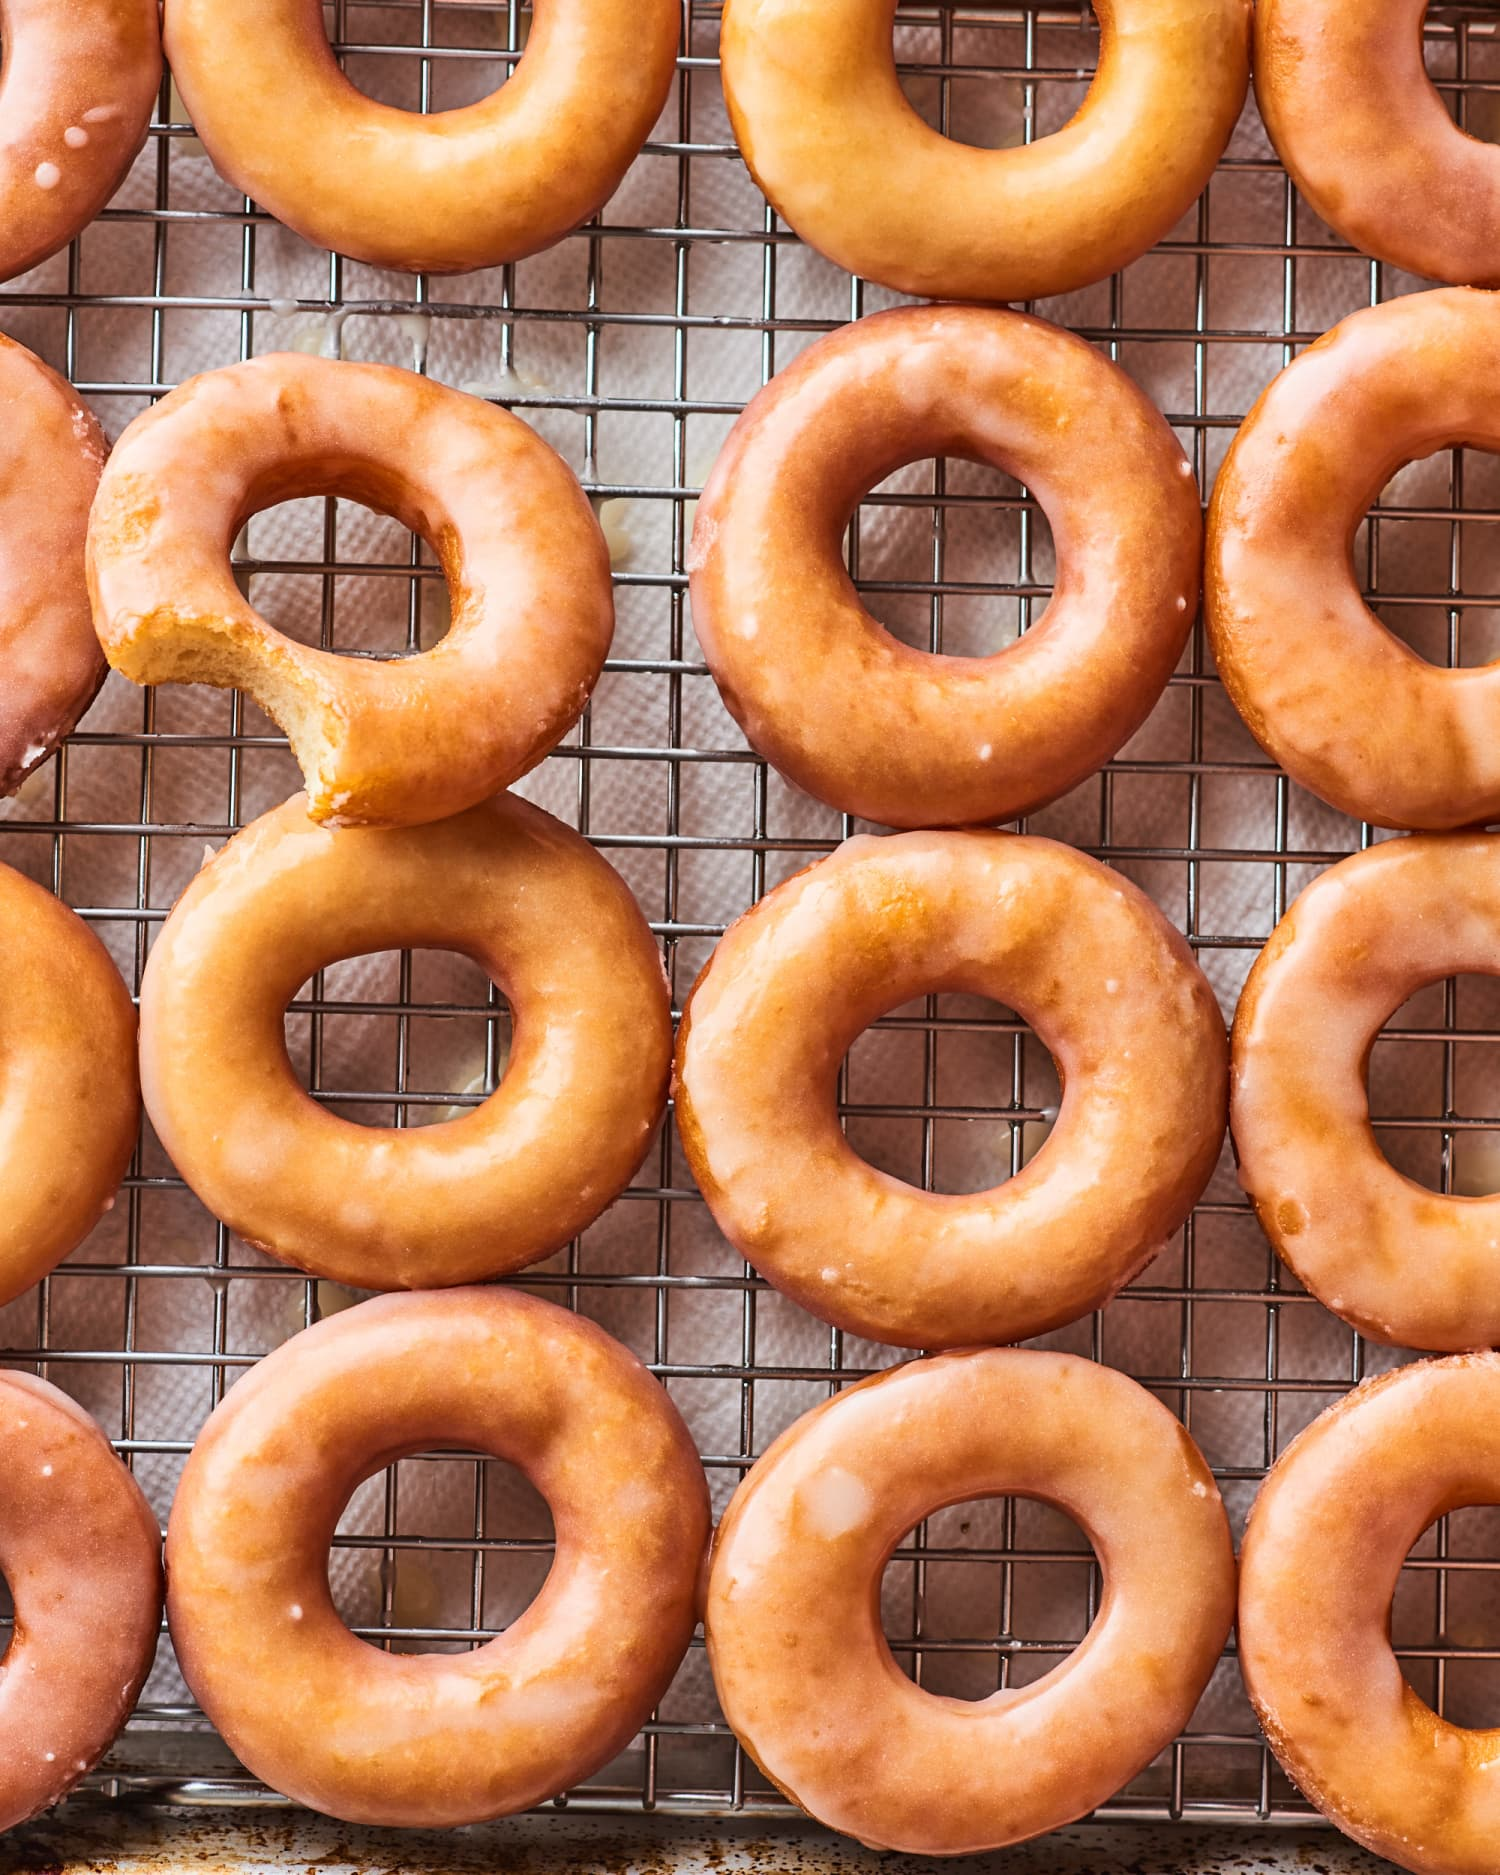 Make These Doughnuts from Scratch, Then Take Over the World